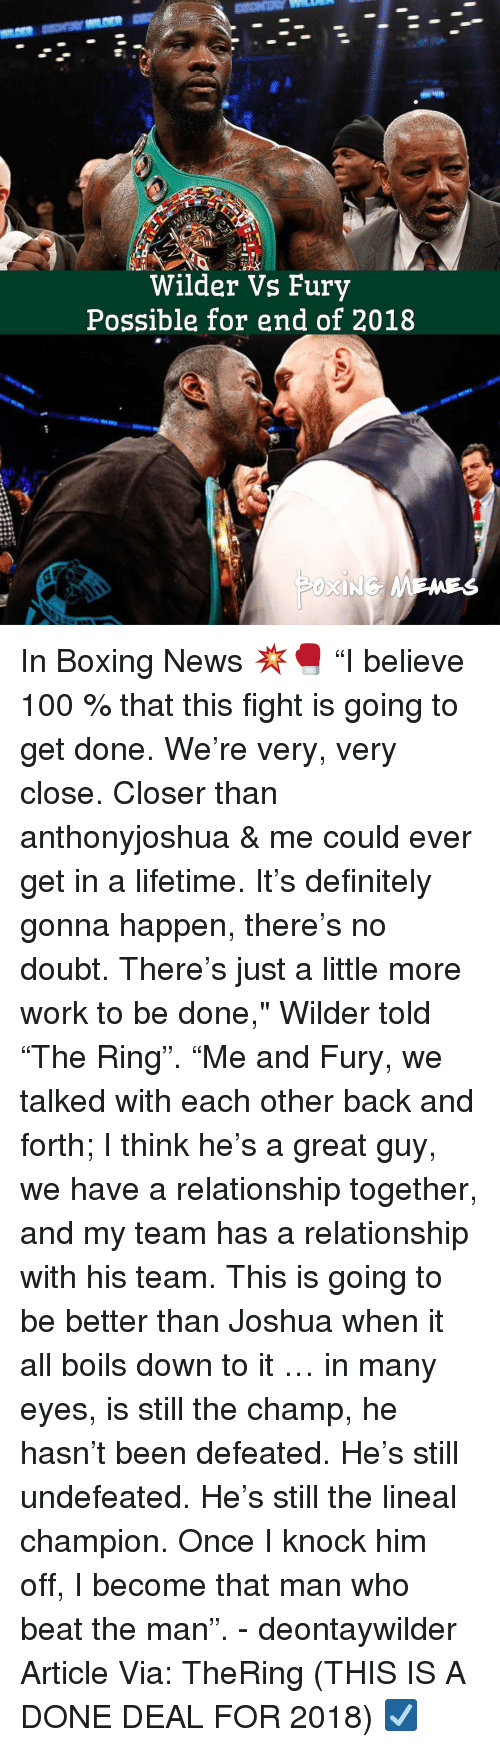 """Anaconda, Boxing, and Definitely: Wilder Vs Fury  Possible for end of 2018 In Boxing News 💥🥊 """"I believe 100 % that this fight is going to get done. We're very, very close. Closer than anthonyjoshua & me could ever get in a lifetime. It's definitely gonna happen, there's no doubt. There's just a little more work to be done,"""" Wilder told """"The Ring"""". """"Me and Fury, we talked with each other back and forth; I think he's a great guy, we have a relationship together, and my team has a relationship with his team. This is going to be better than Joshua when it all boils down to it … in many eyes, is still the champ, he hasn't been defeated. He's still undefeated. He's still the lineal champion. Once I knock him off, I become that man who beat the man"""". - deontaywilder Article Via: TheRing (THIS IS A DONE DEAL FOR 2018) ☑️"""